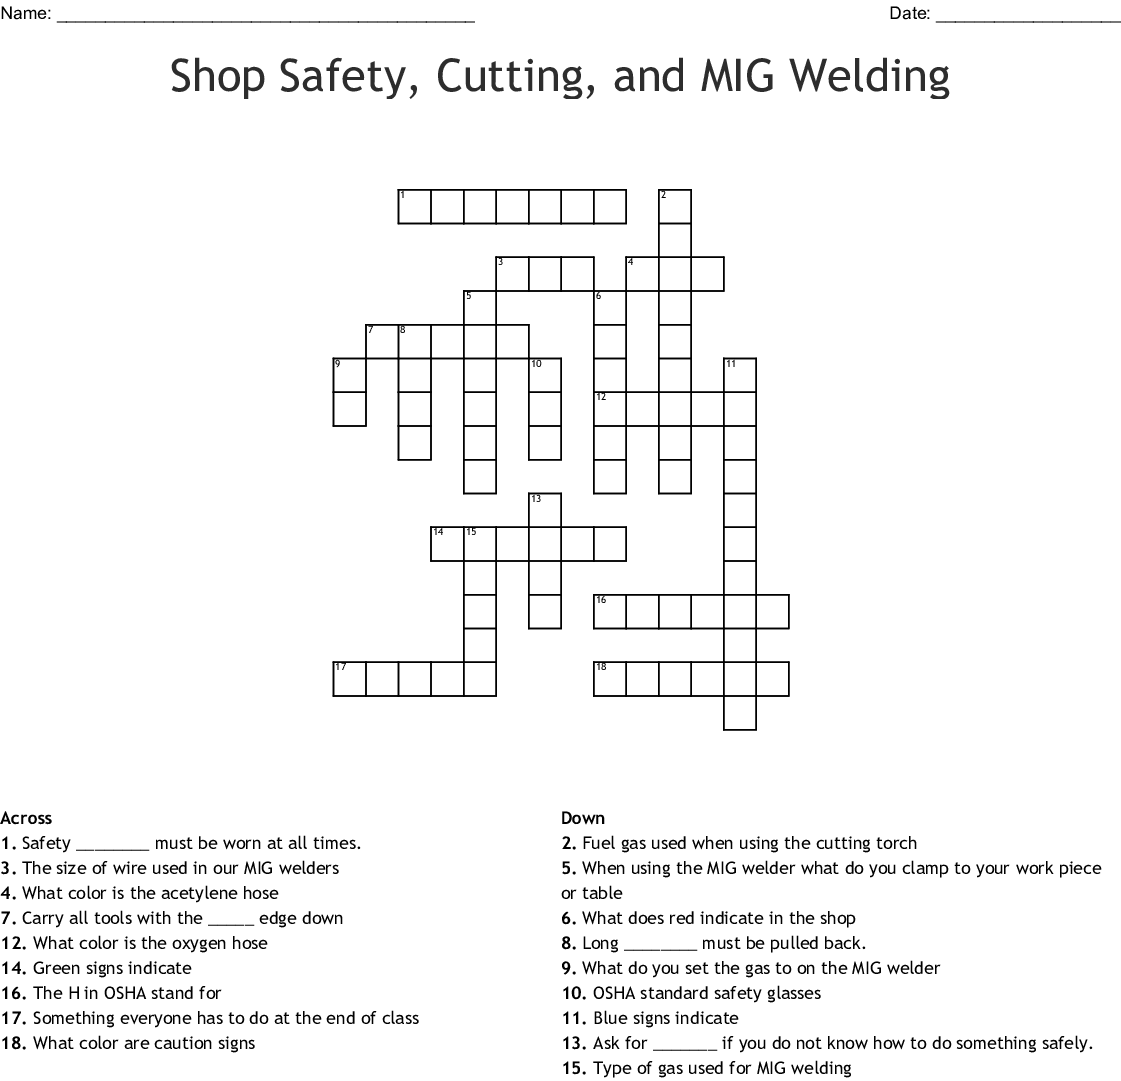 Welding Shop Safety Student Worksheet